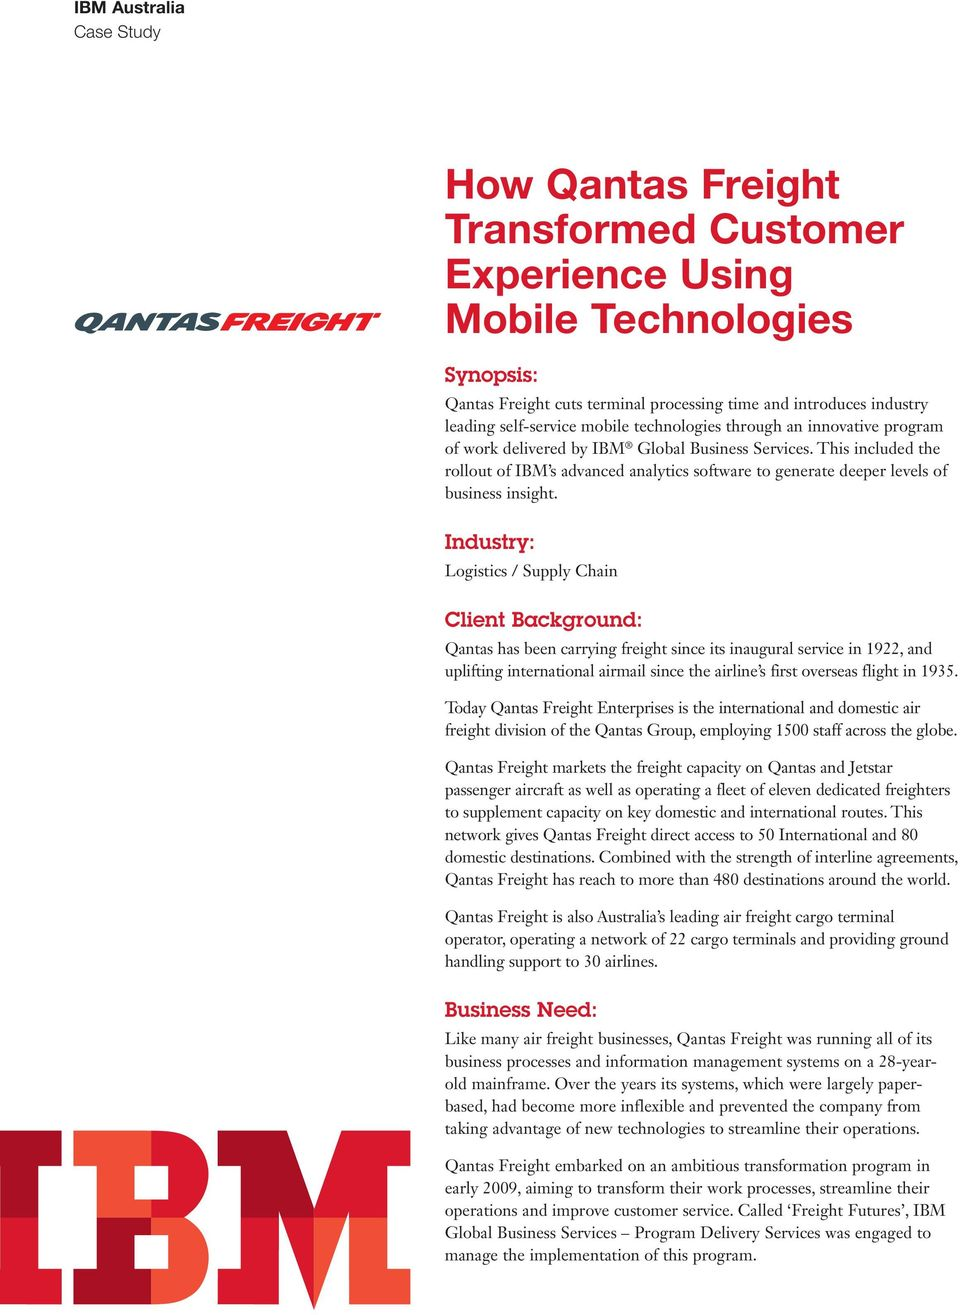 How Qantas Freight Transformed Customer Experience Using